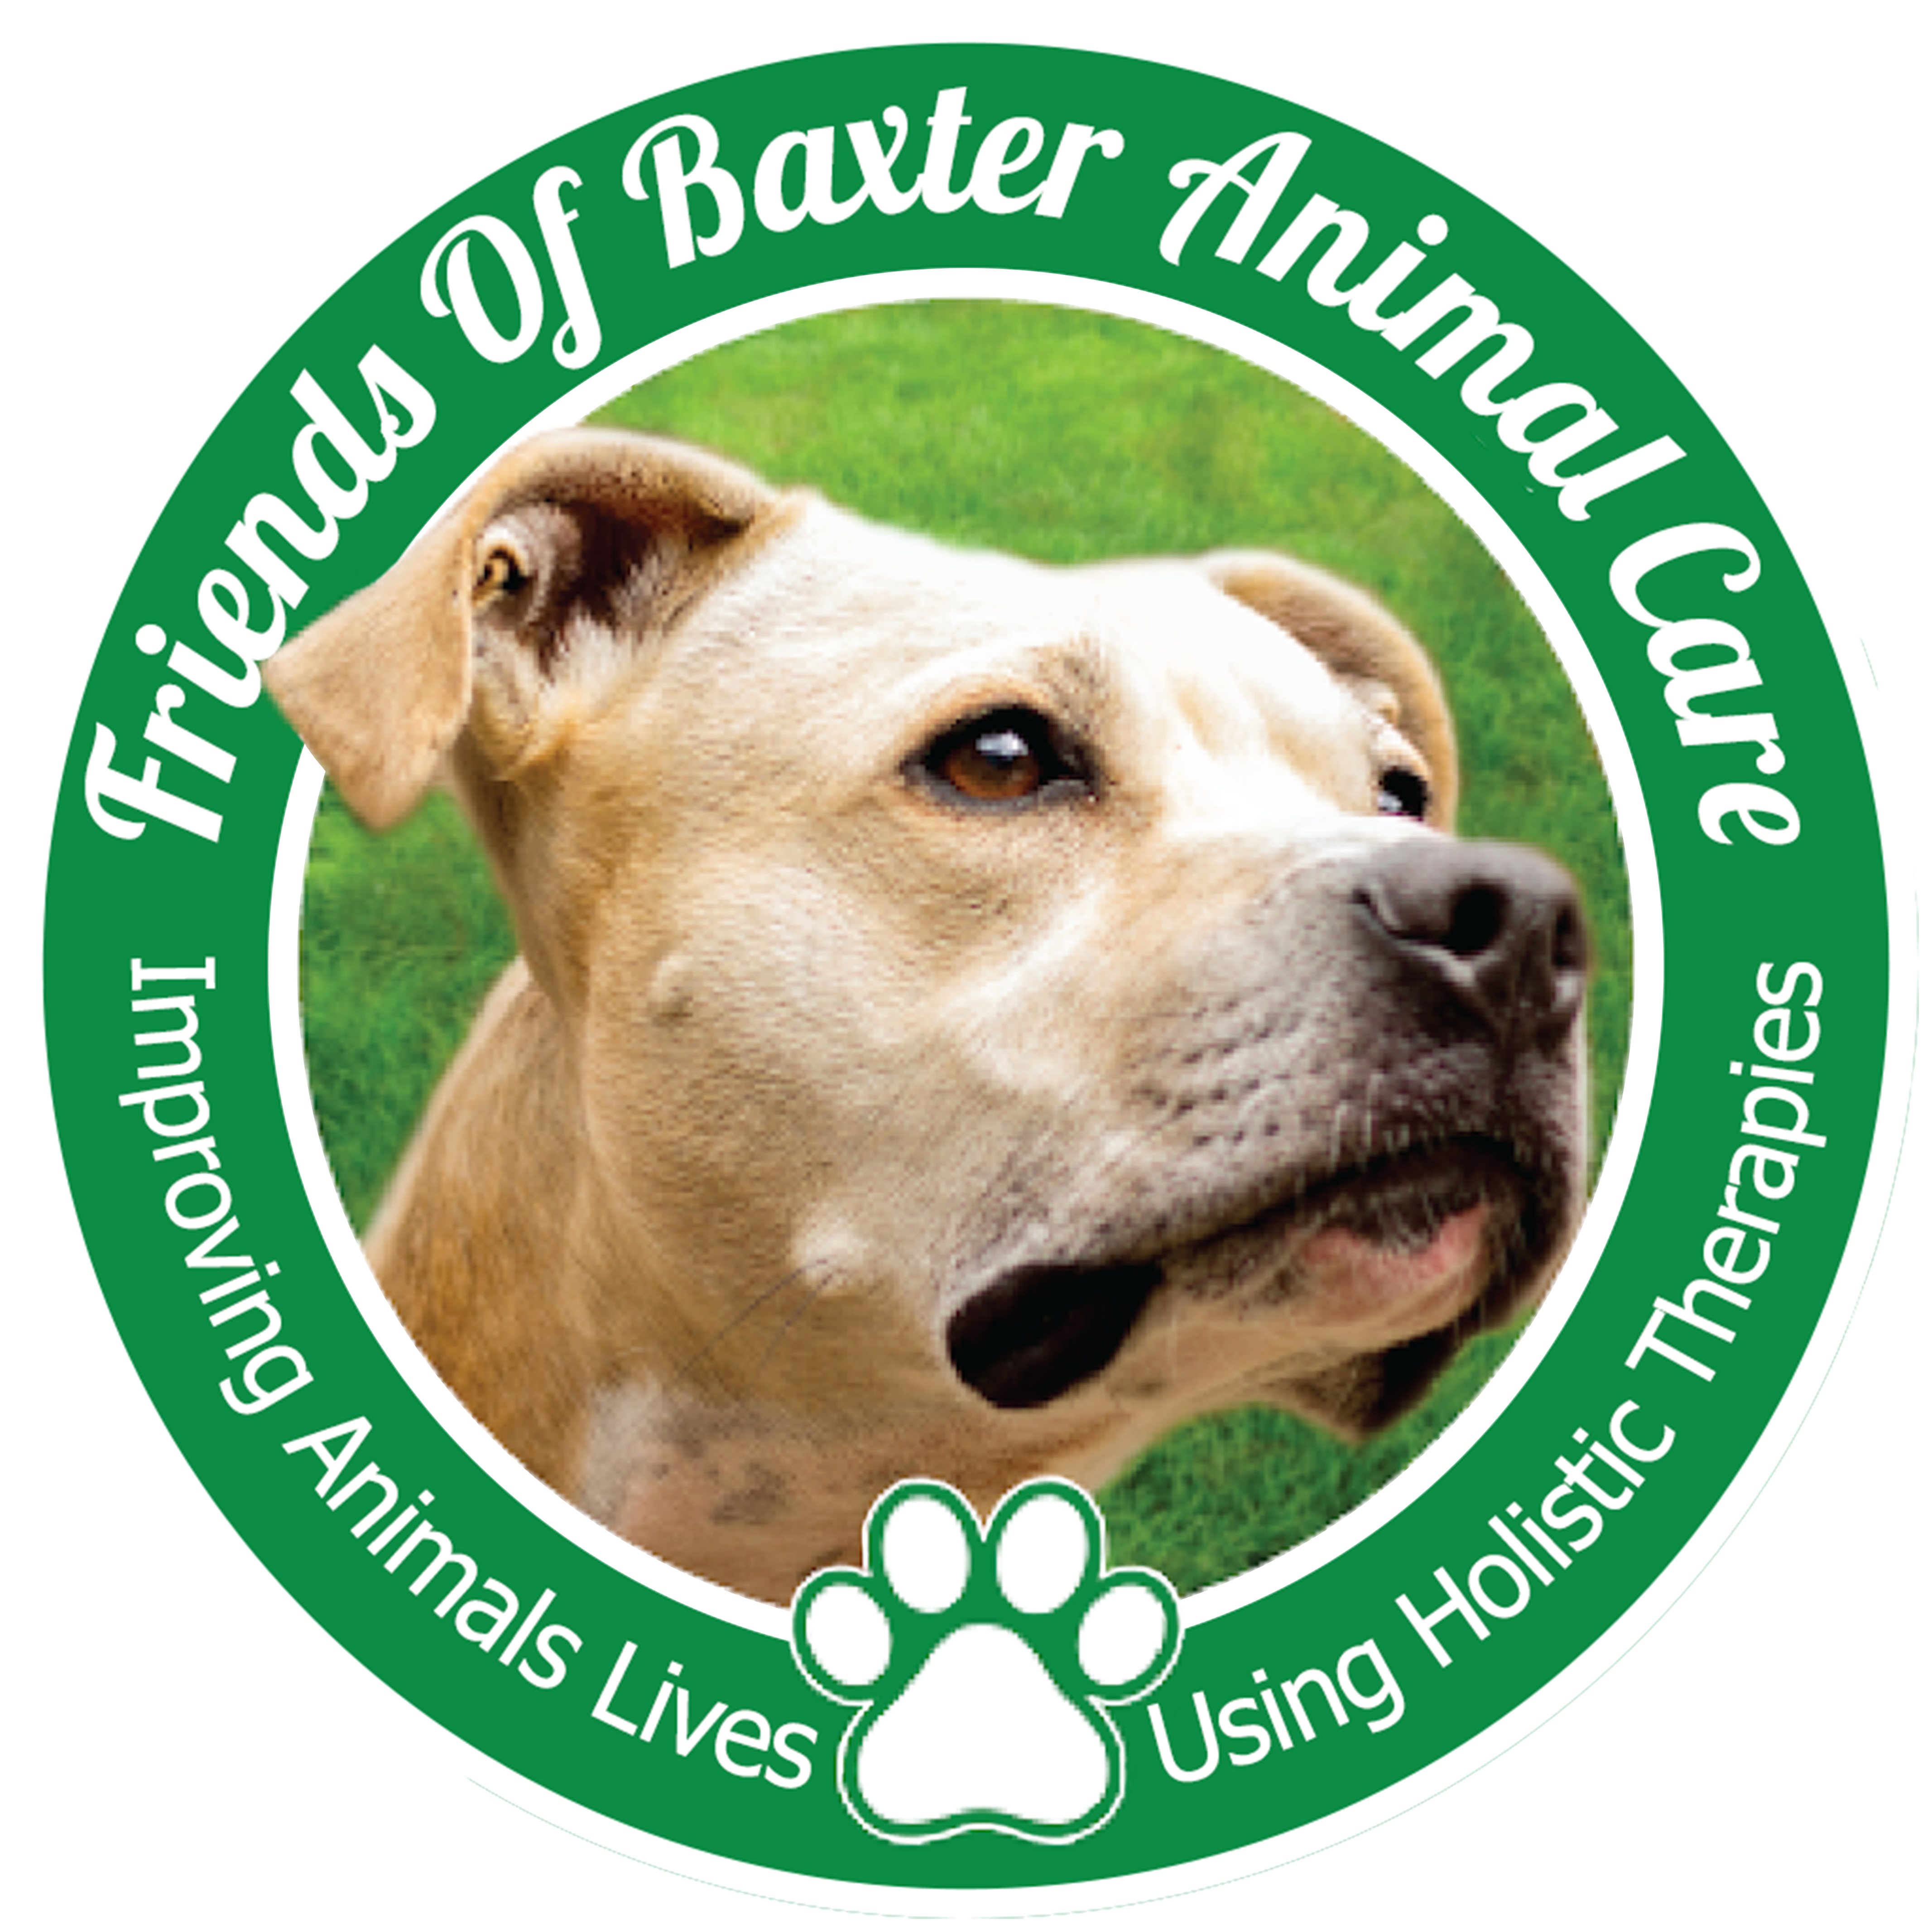 Friends Of Baxter Animal Care